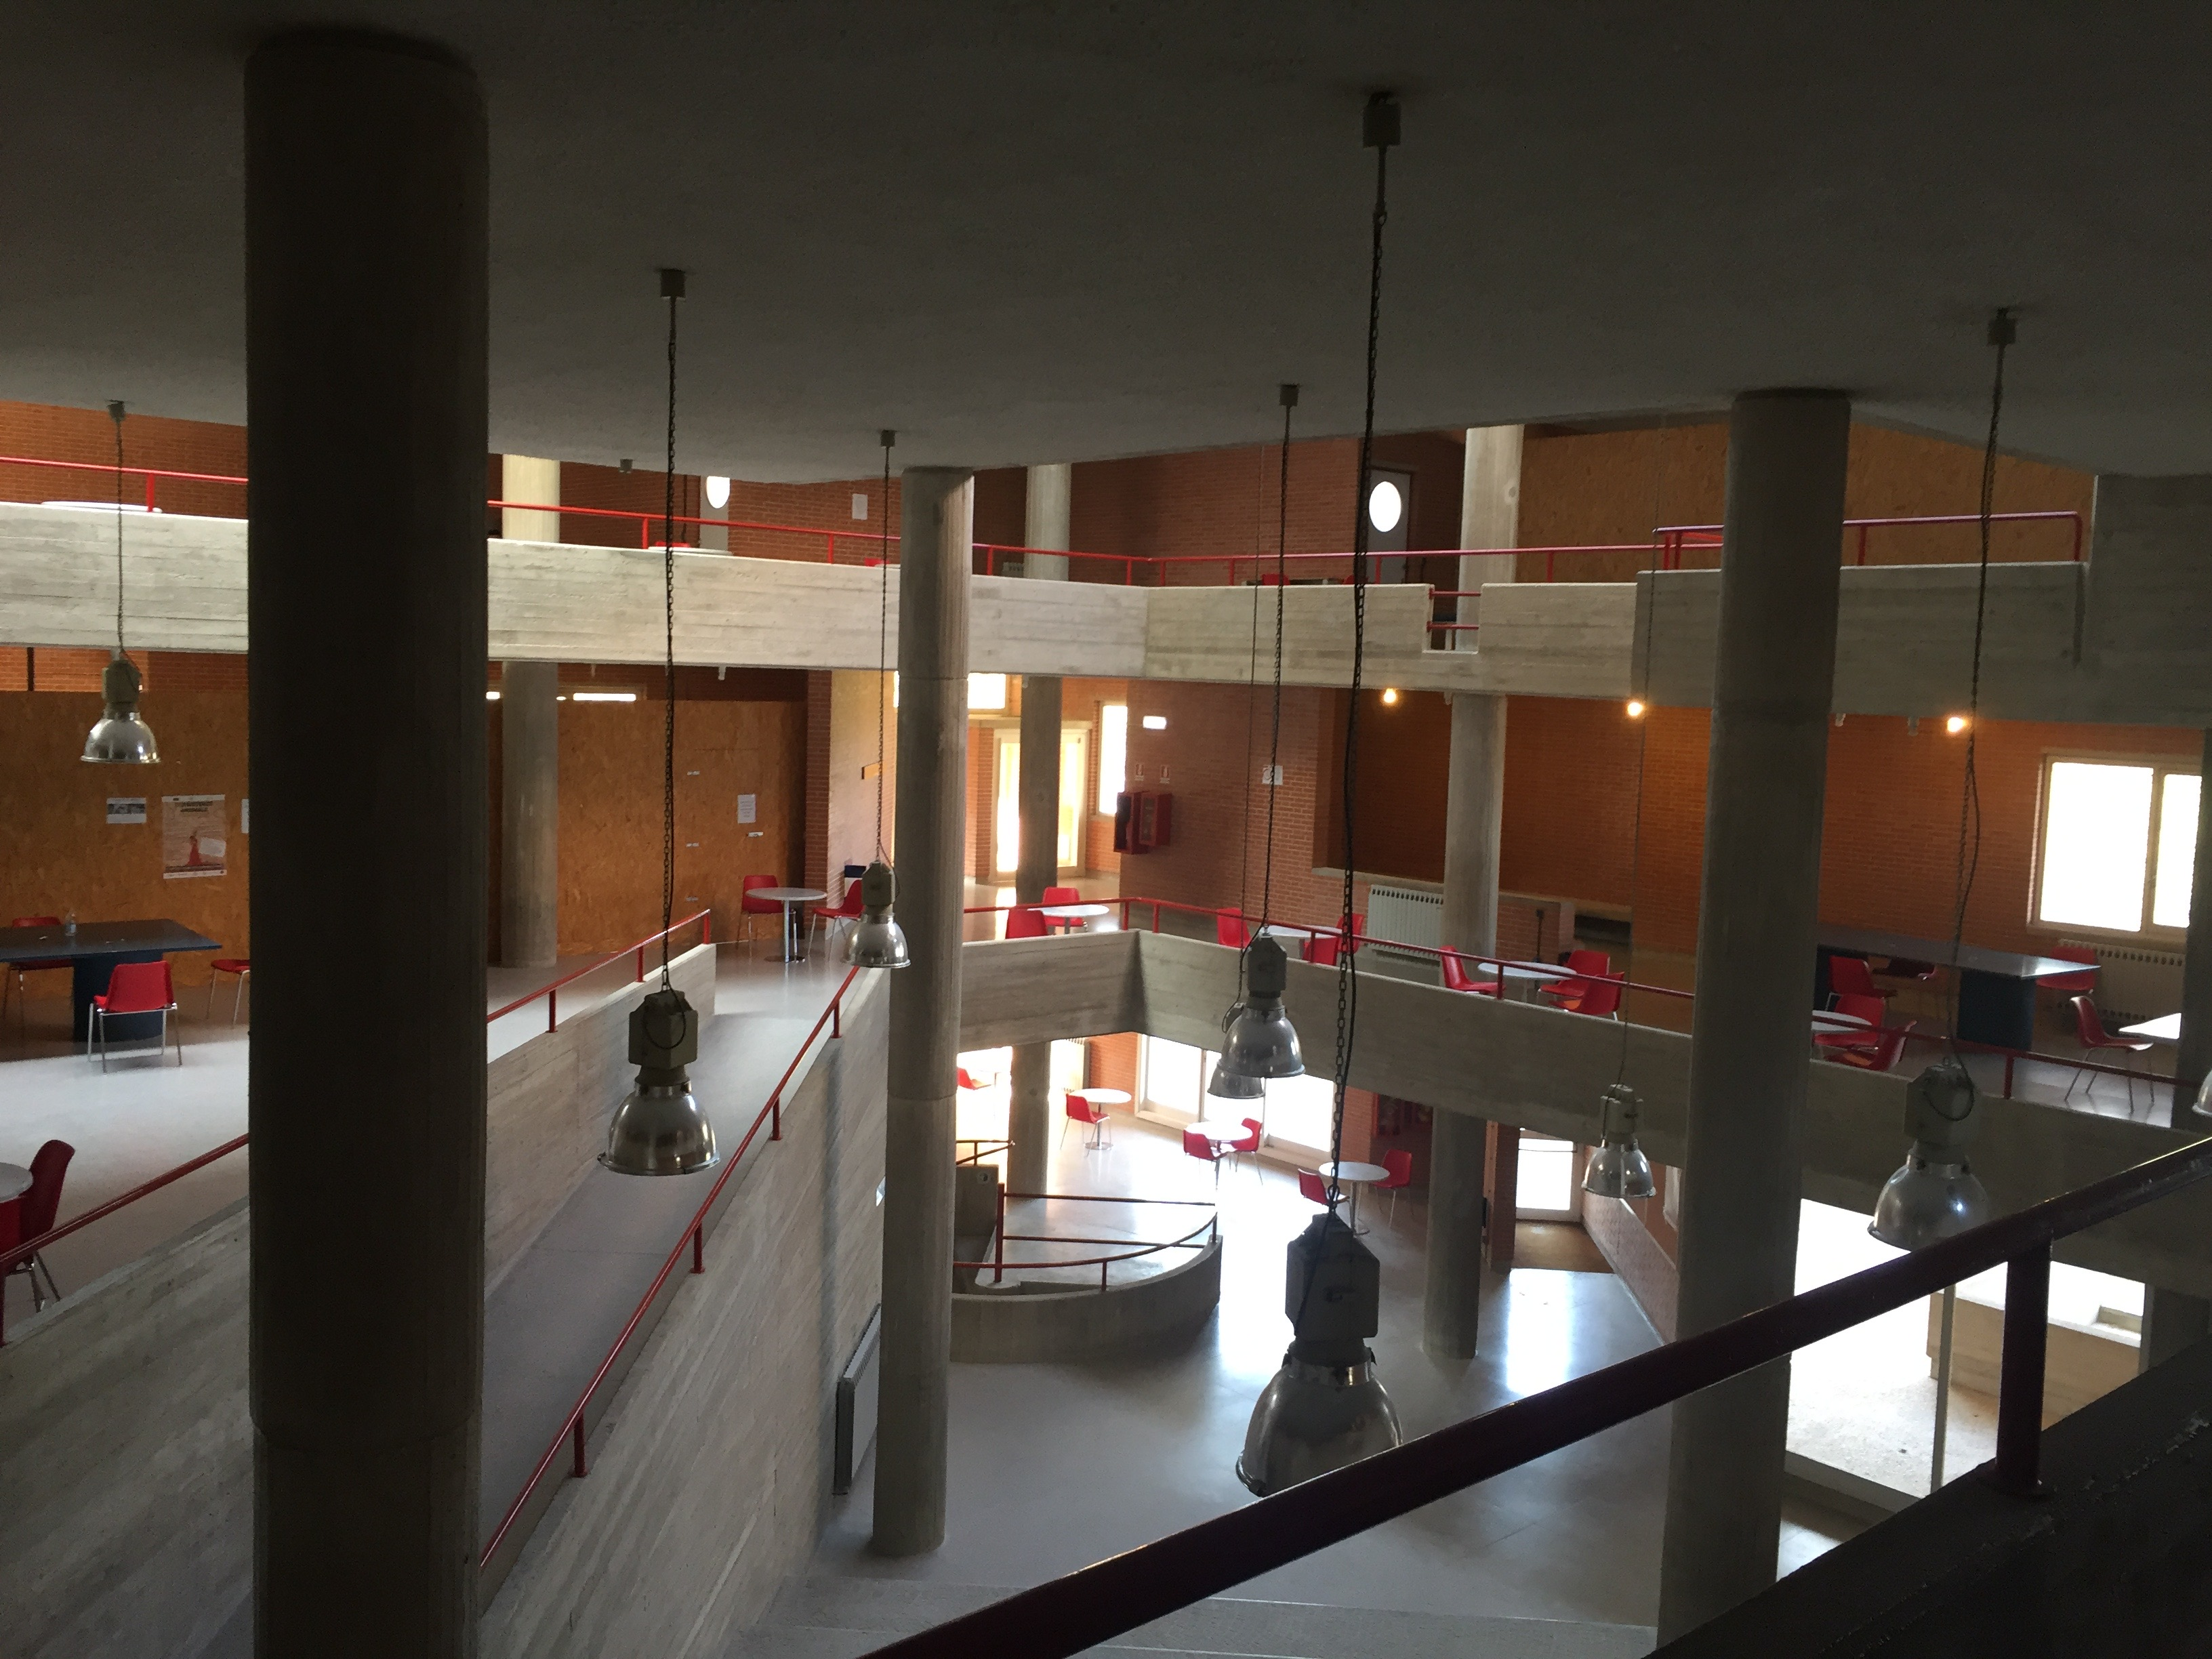 Giancarlo De Carlo originally designed this space in Aquilone for social atmospheres, but is mainly used for studying. Photo by Bridget Hepworth